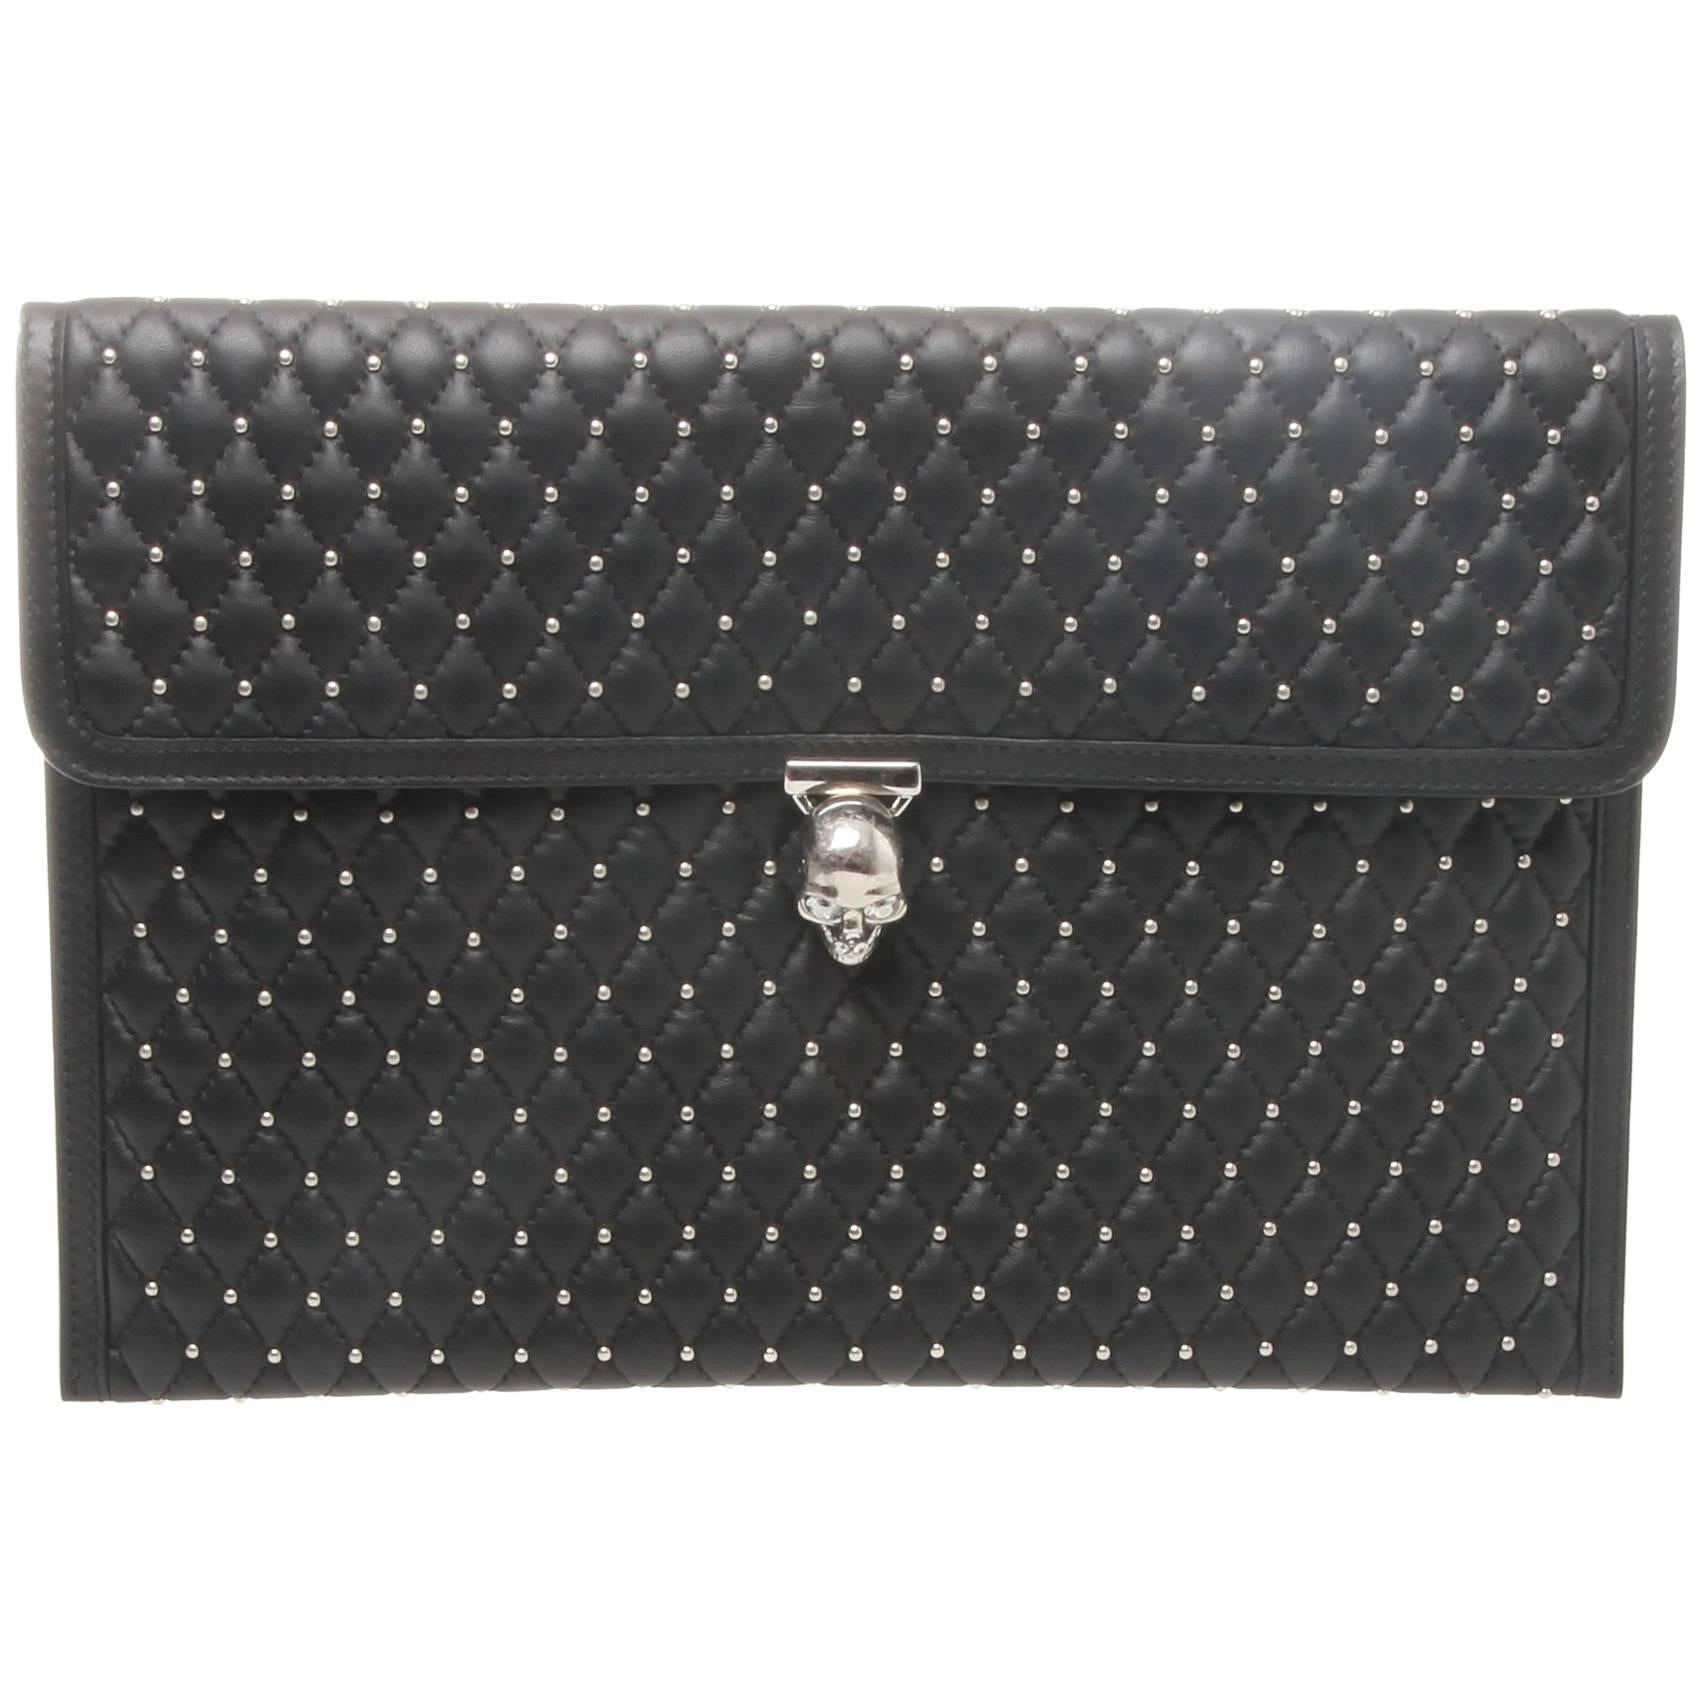 Alexander McQueen Studded Quilted Leather Double Clutch 9i1oXntjR